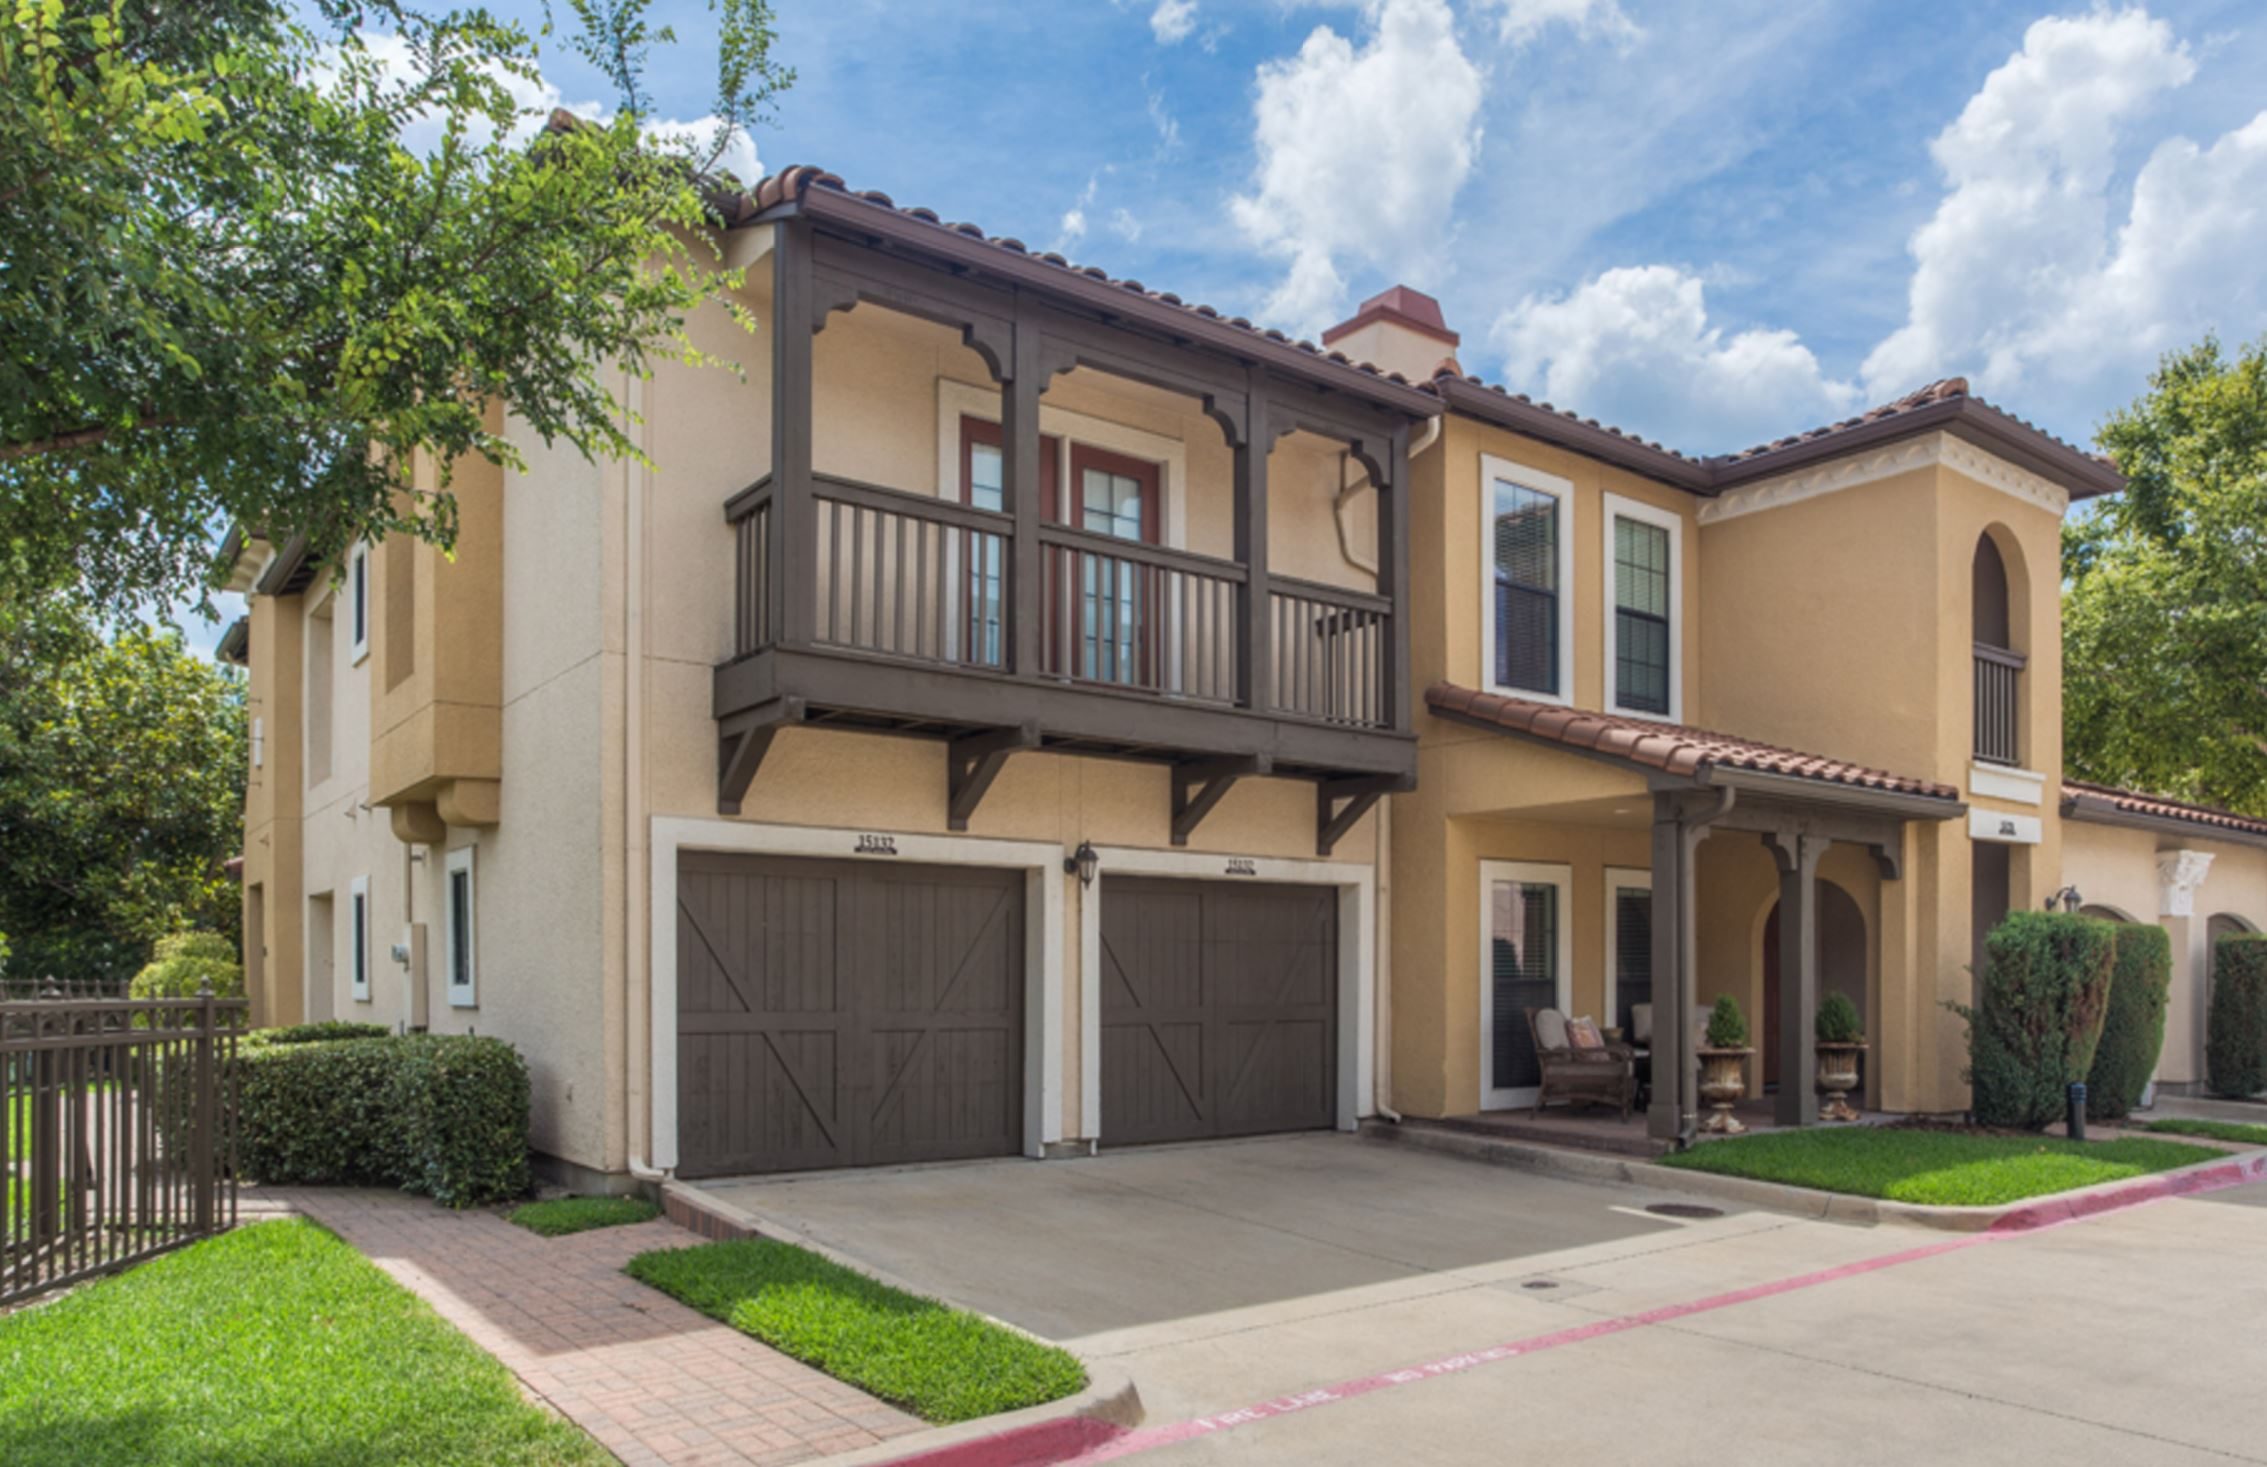 Garage Apartment Lakewood Dallas Townhome 2 Bed 2 5 Bath 2 Car Garage The Apartment Specialist